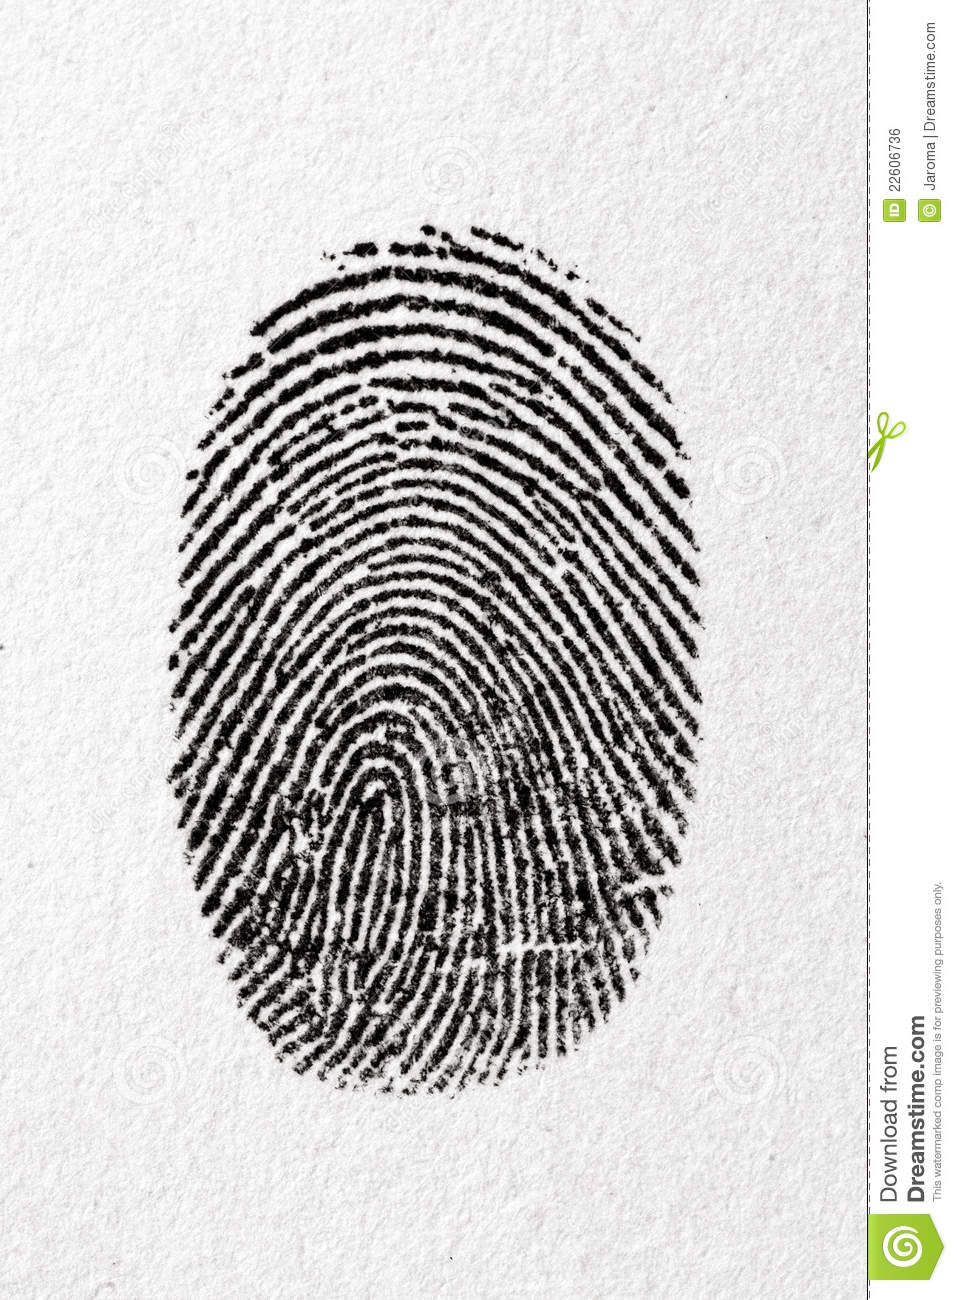 biometric paper Read our free biometrics whitepapers to learn more about the solution providers, new technology and developments in the biometrics industry contact us for.